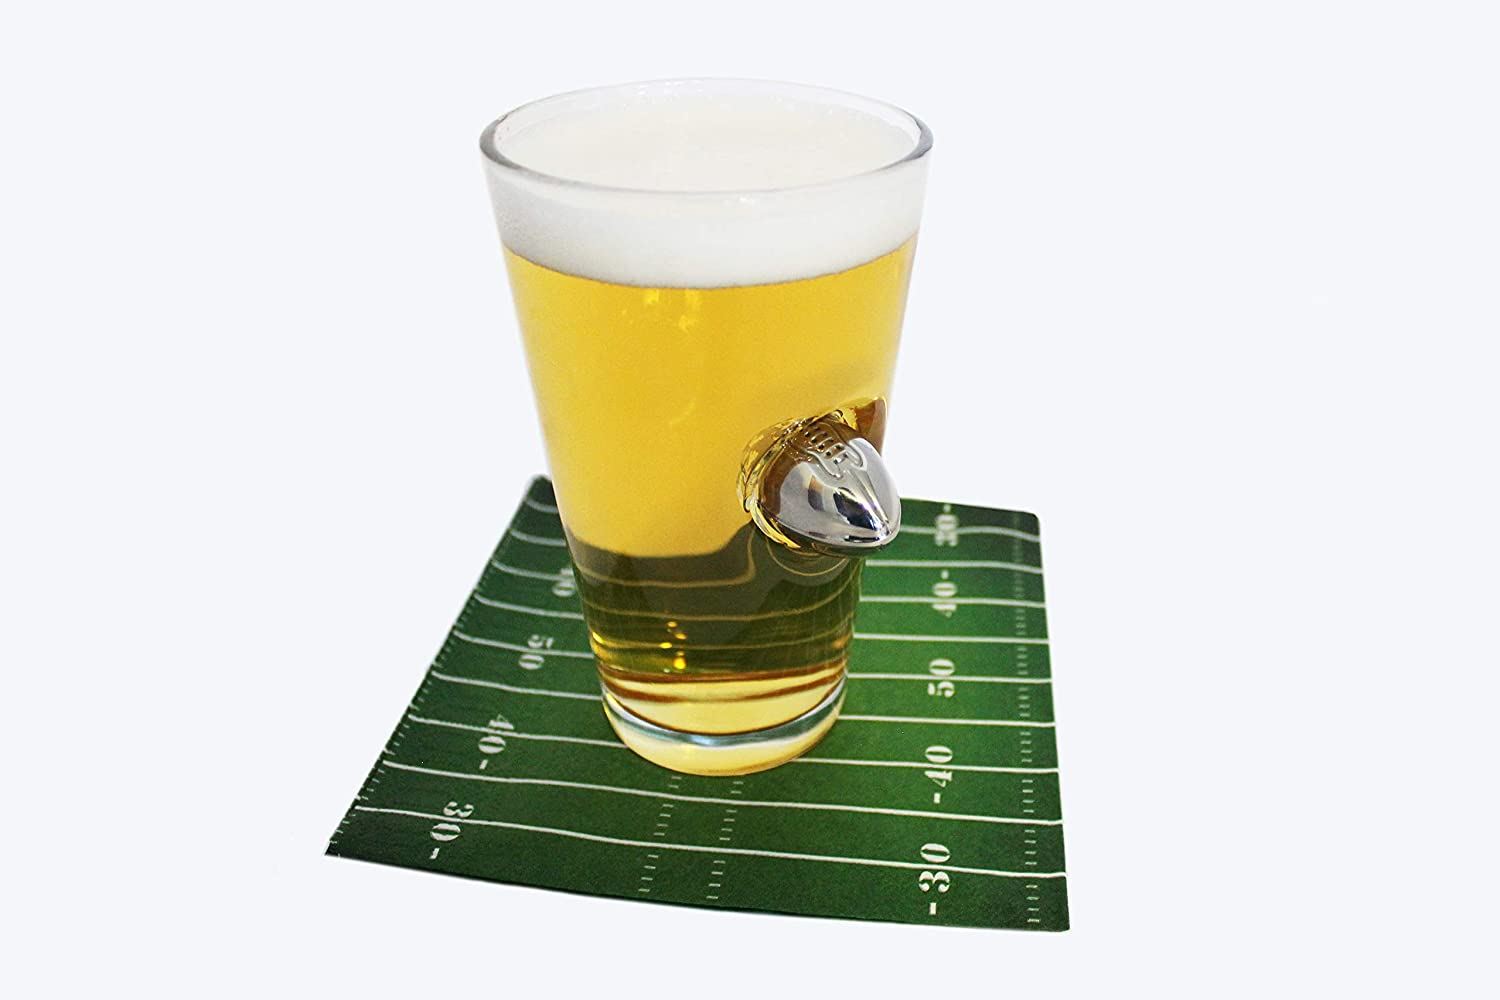 Football Pint Glass with Metal Football Crashing Through For Tailgates or Super Bowl Parties Football Beer Glass 16oz